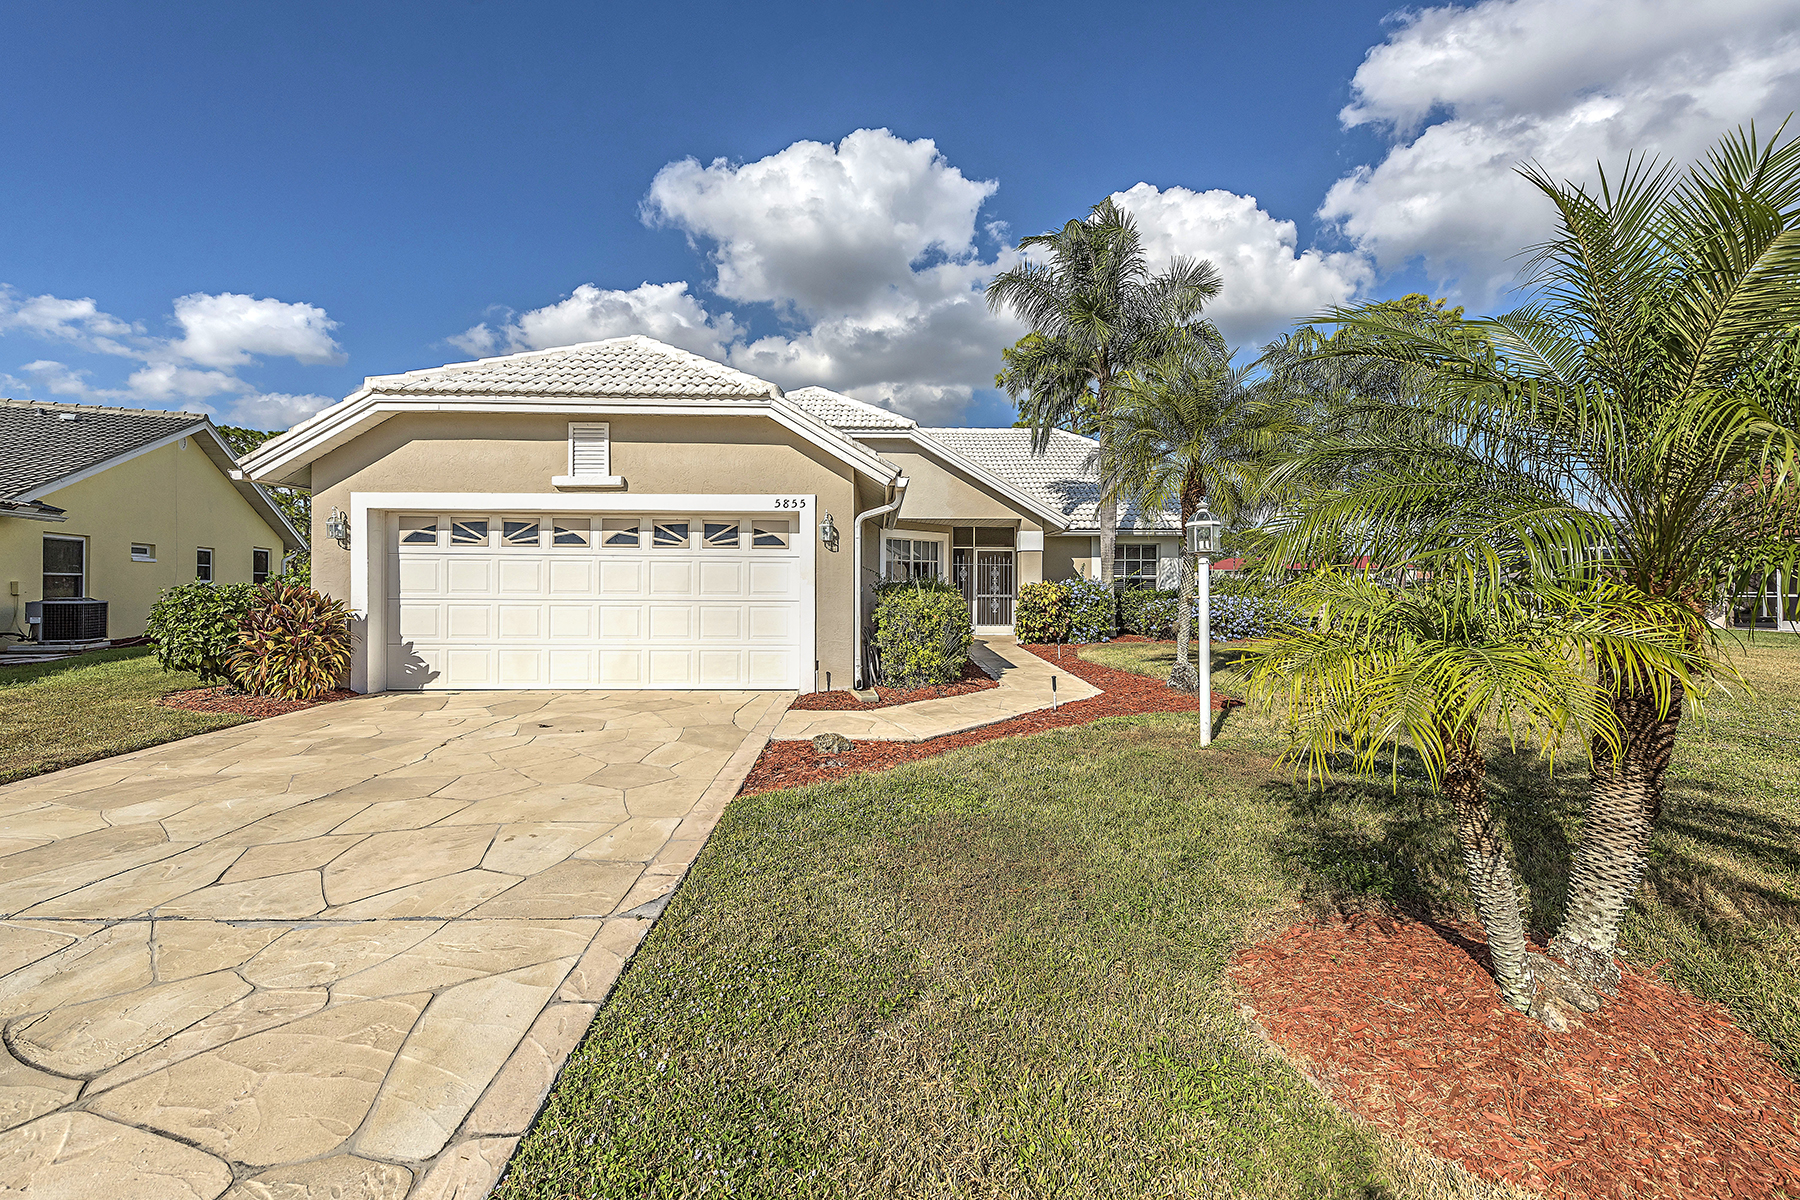 Single Family Home for Sale at Naples 5855 Westbourgh Ct Naples, Florida, 34112 United States